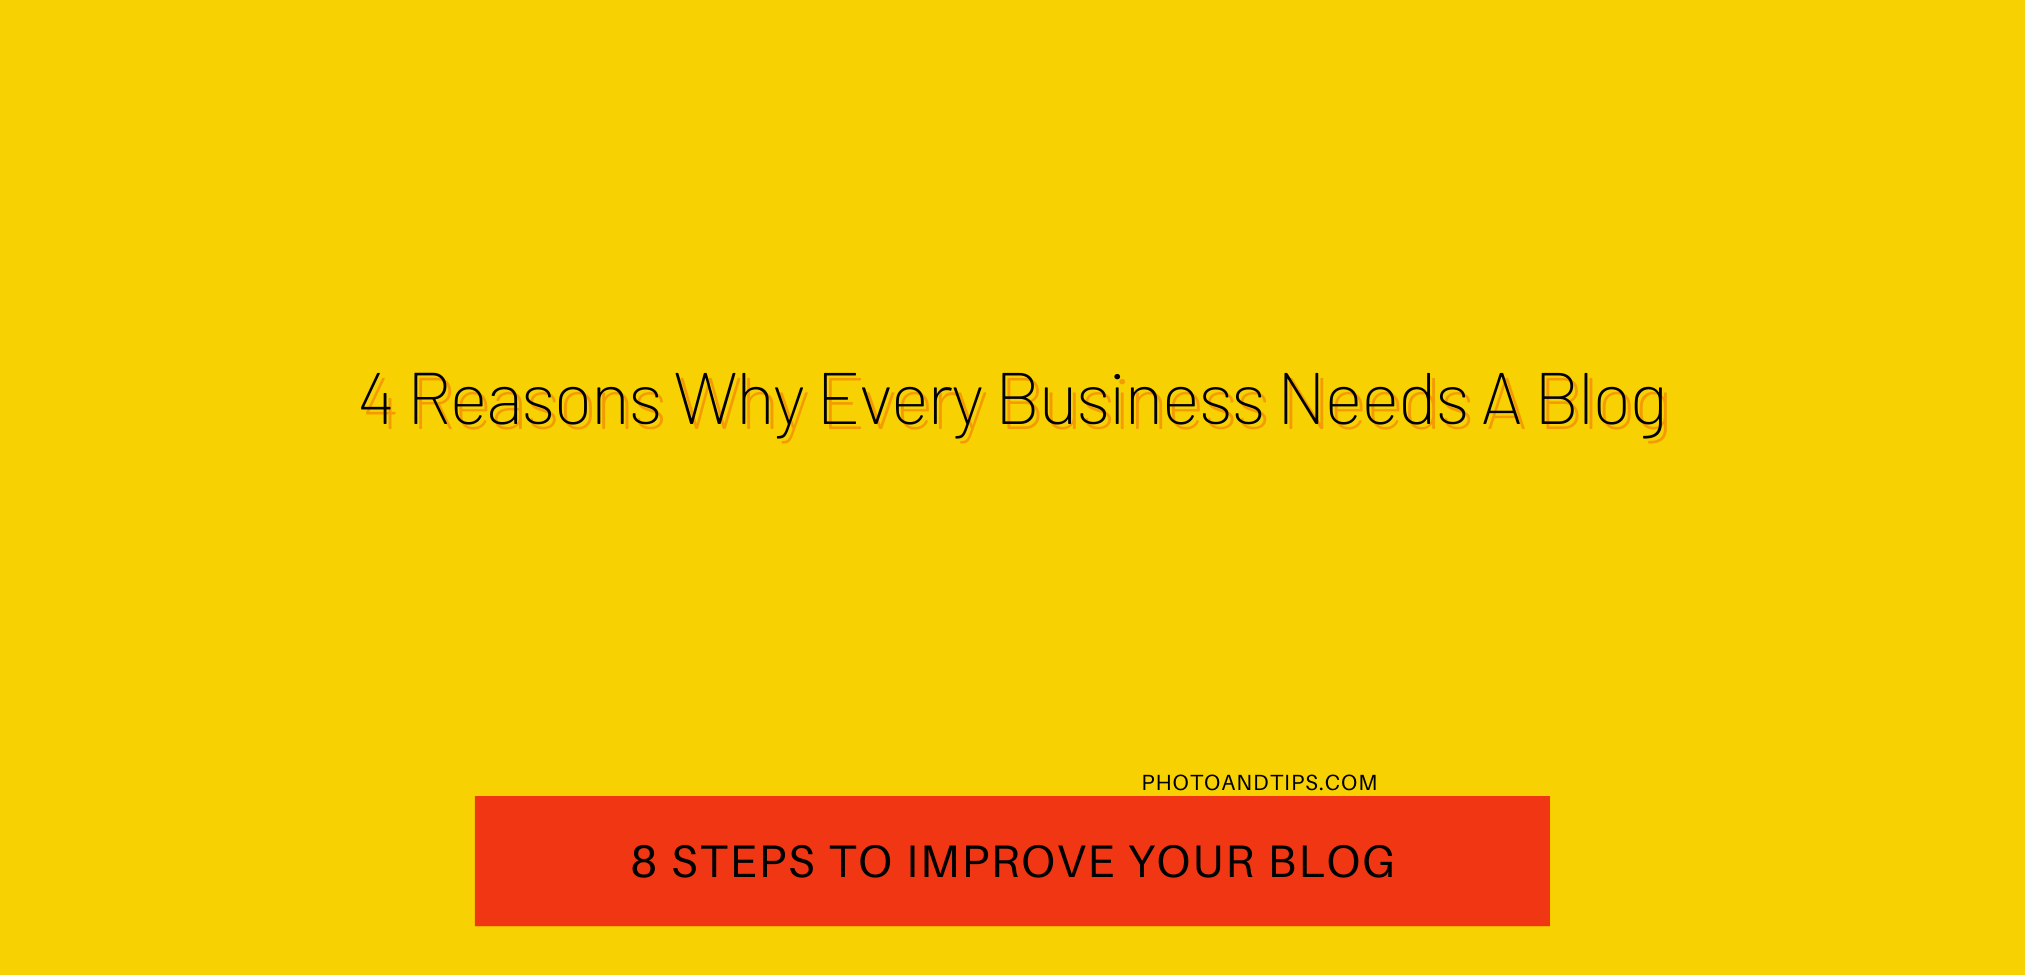 4 Reasons Why Every Business Needs A Blog - 8 Steps to Improve Your Blog